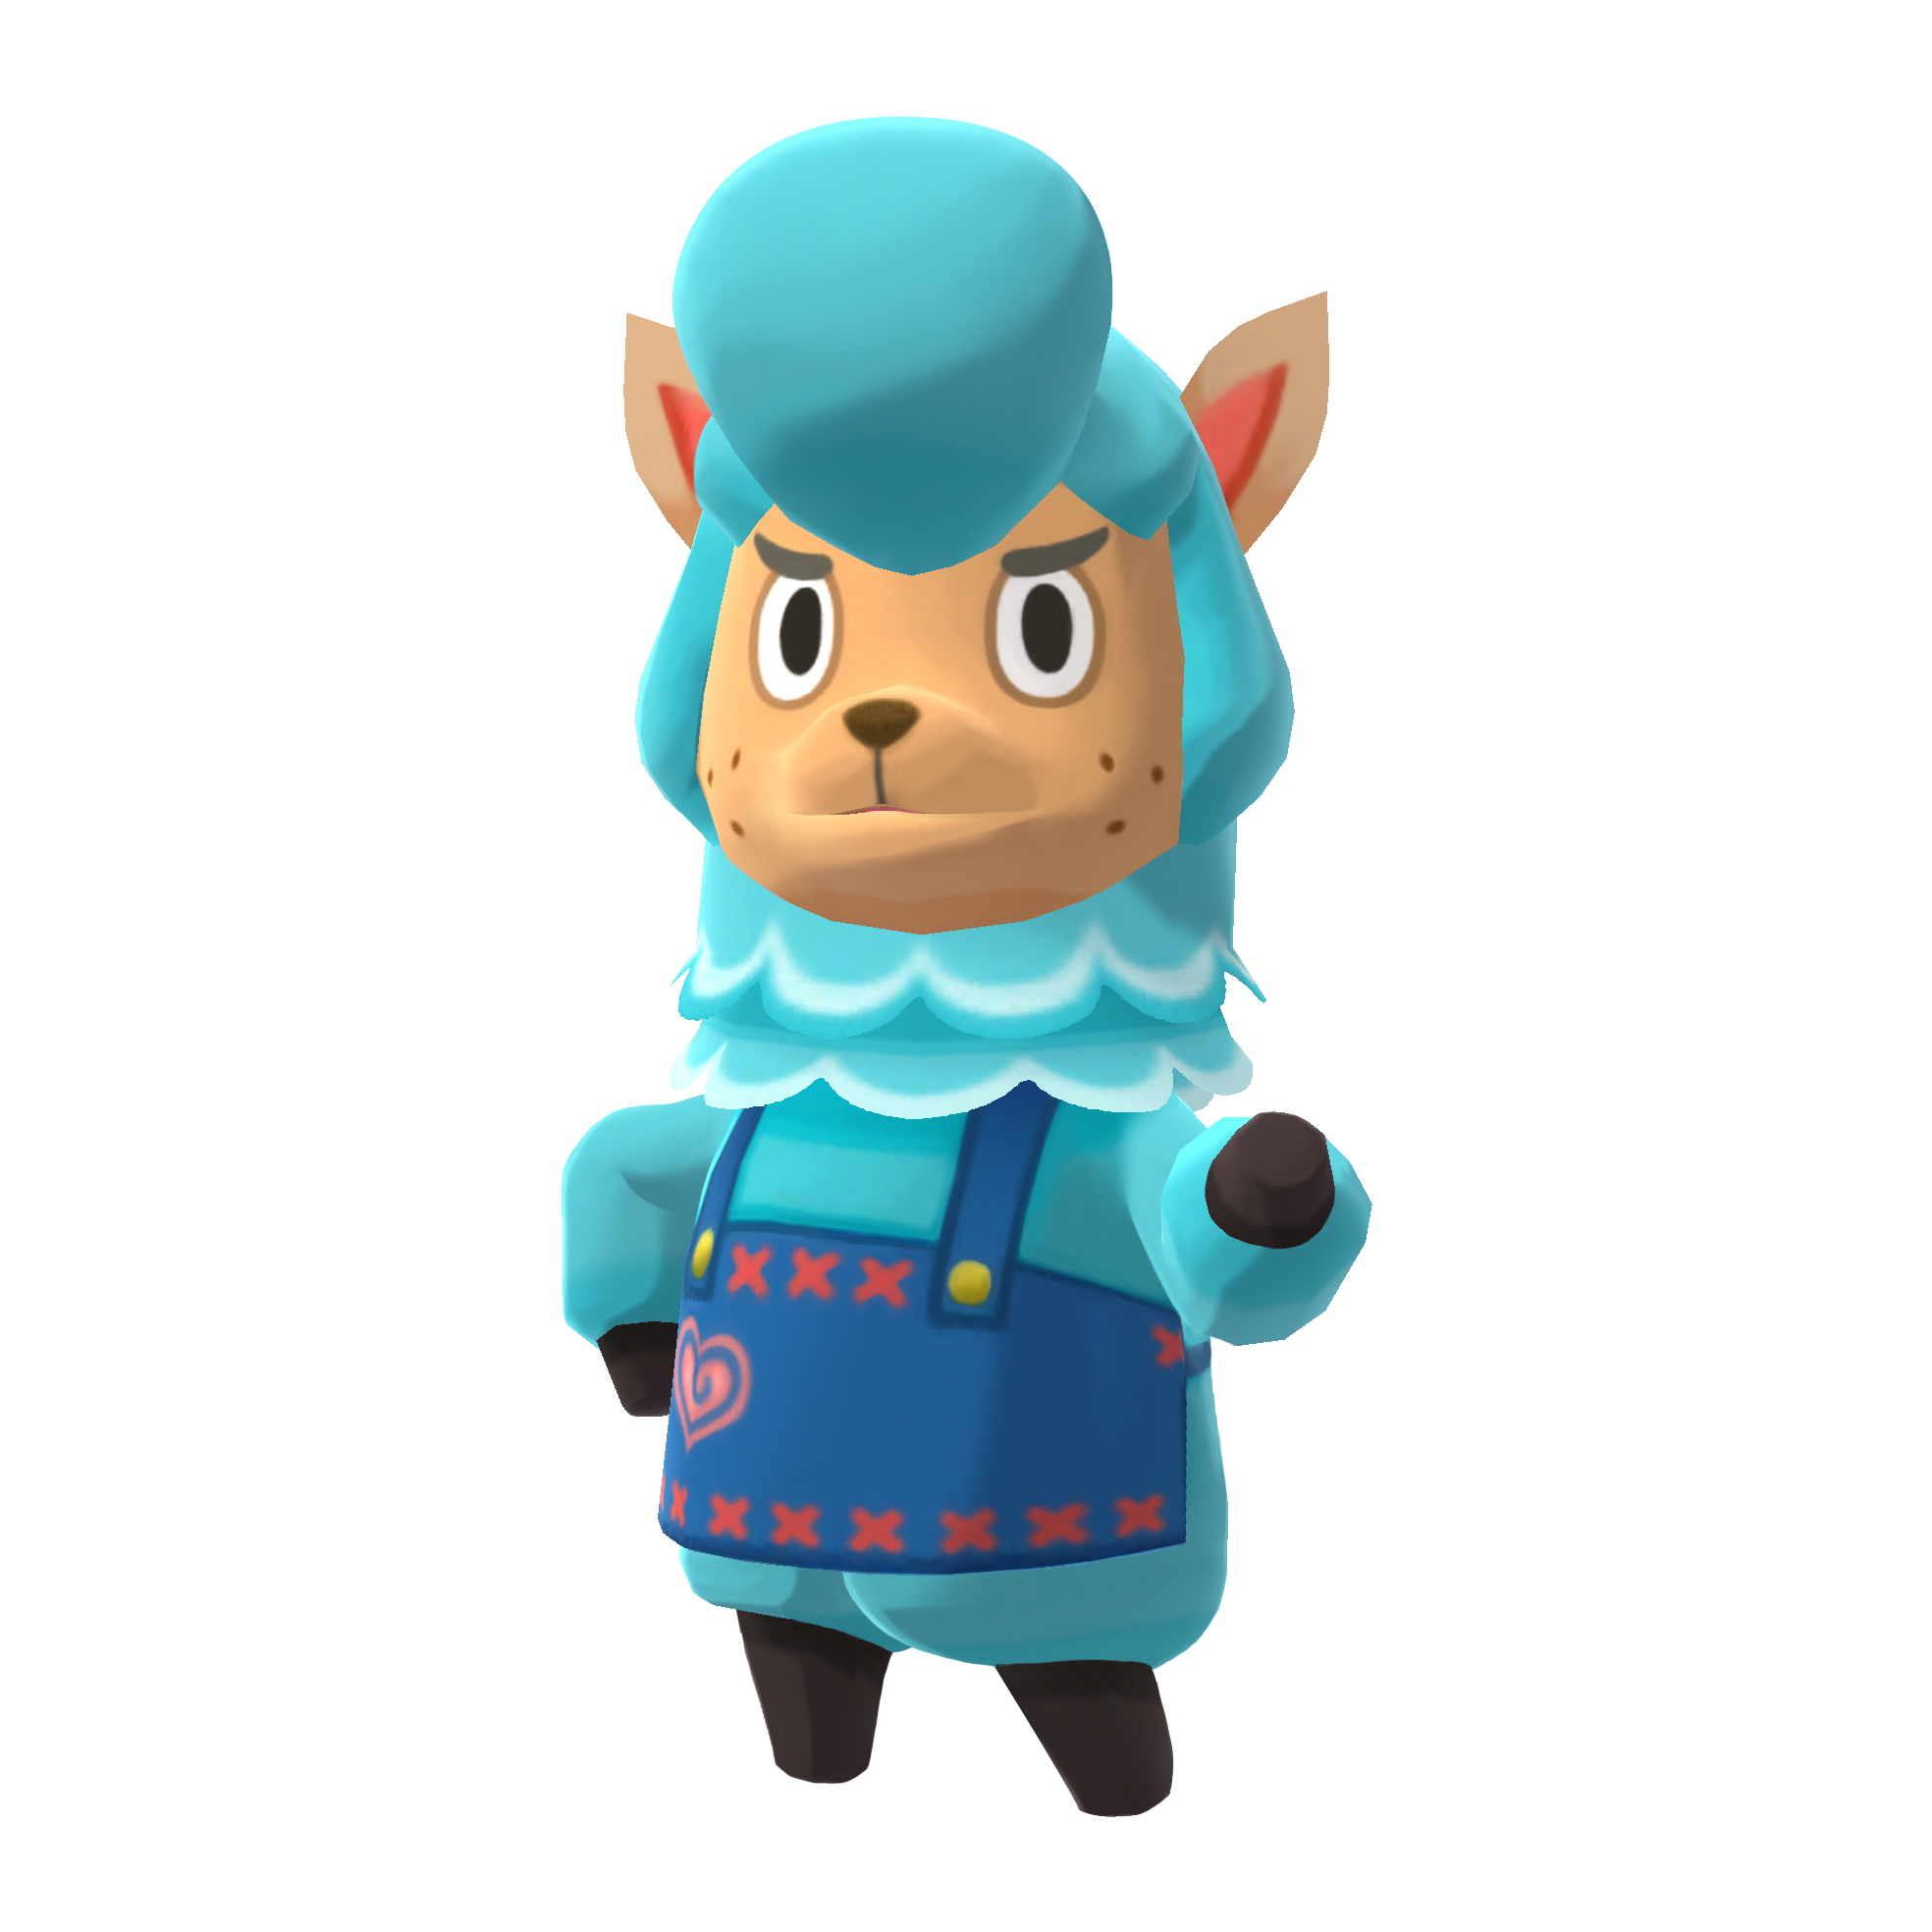 Animal crossing characters png. Image pocket camp character